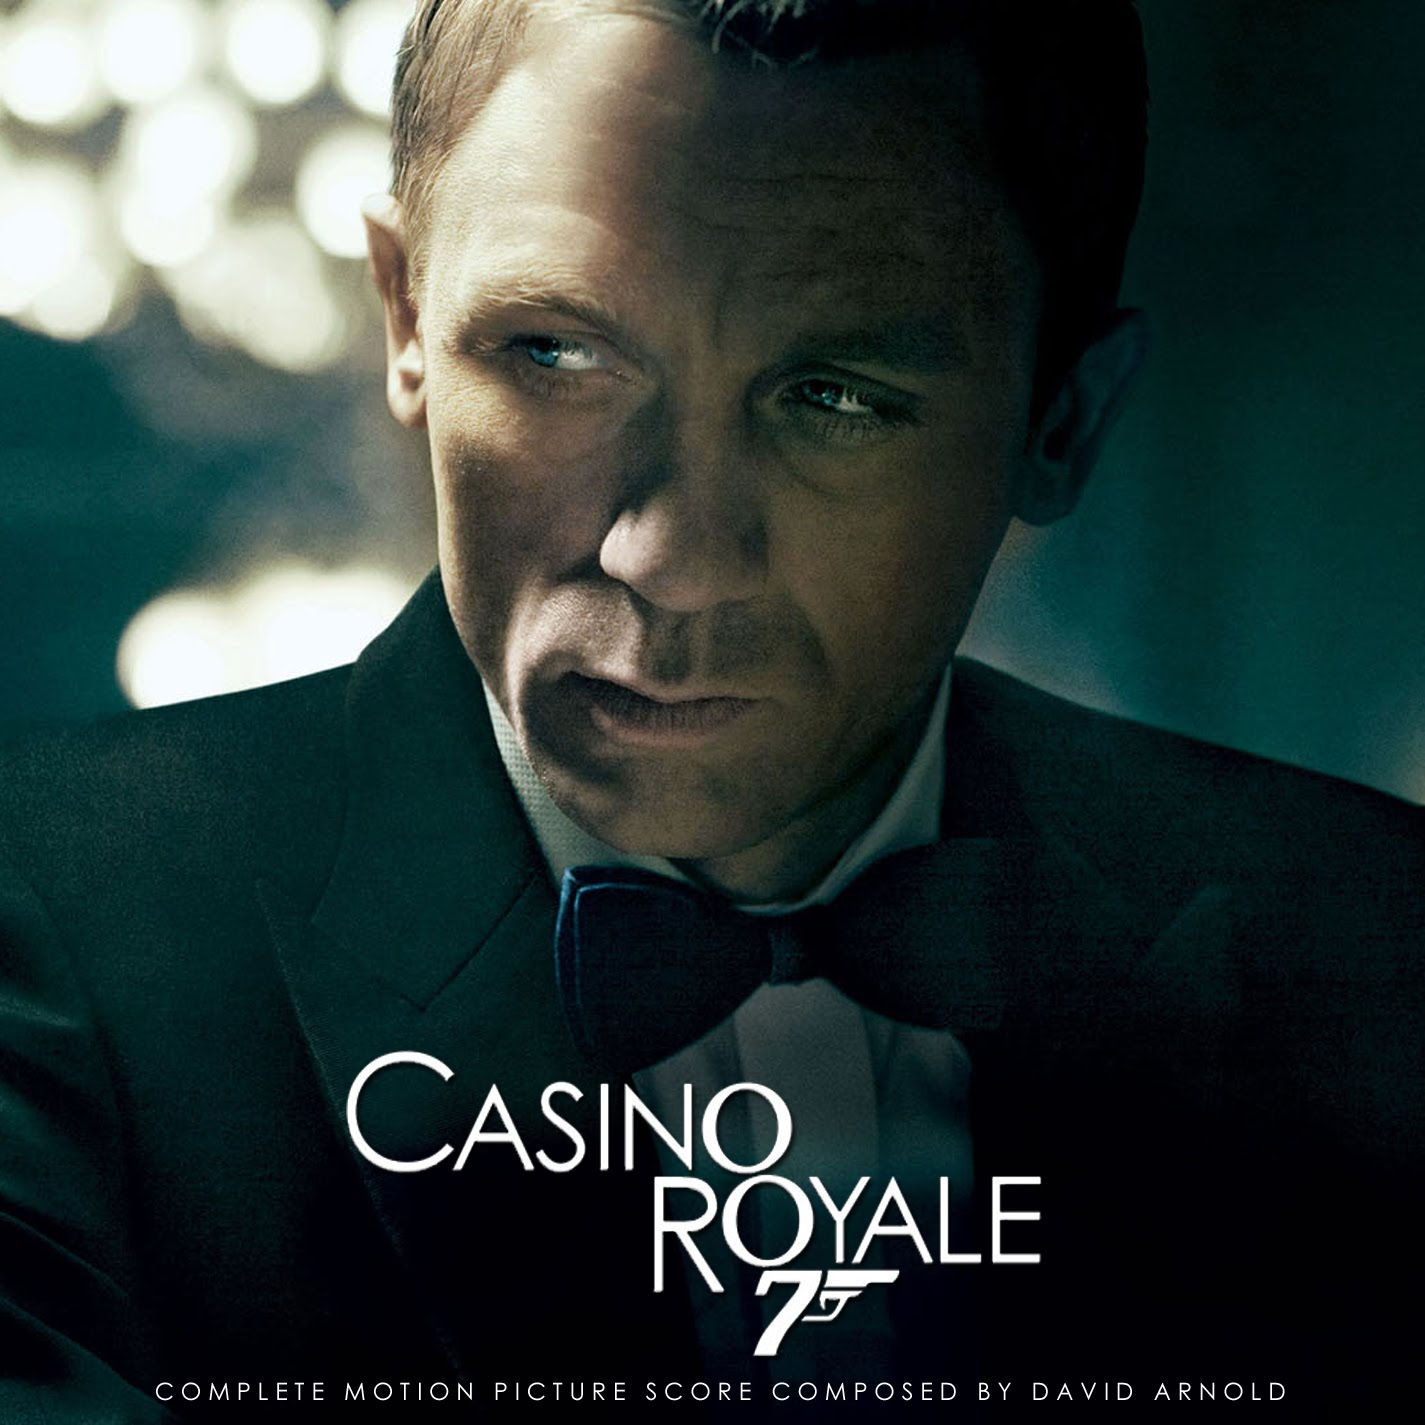 David arnold casino royale theme microgaming casino minimum deposit 1